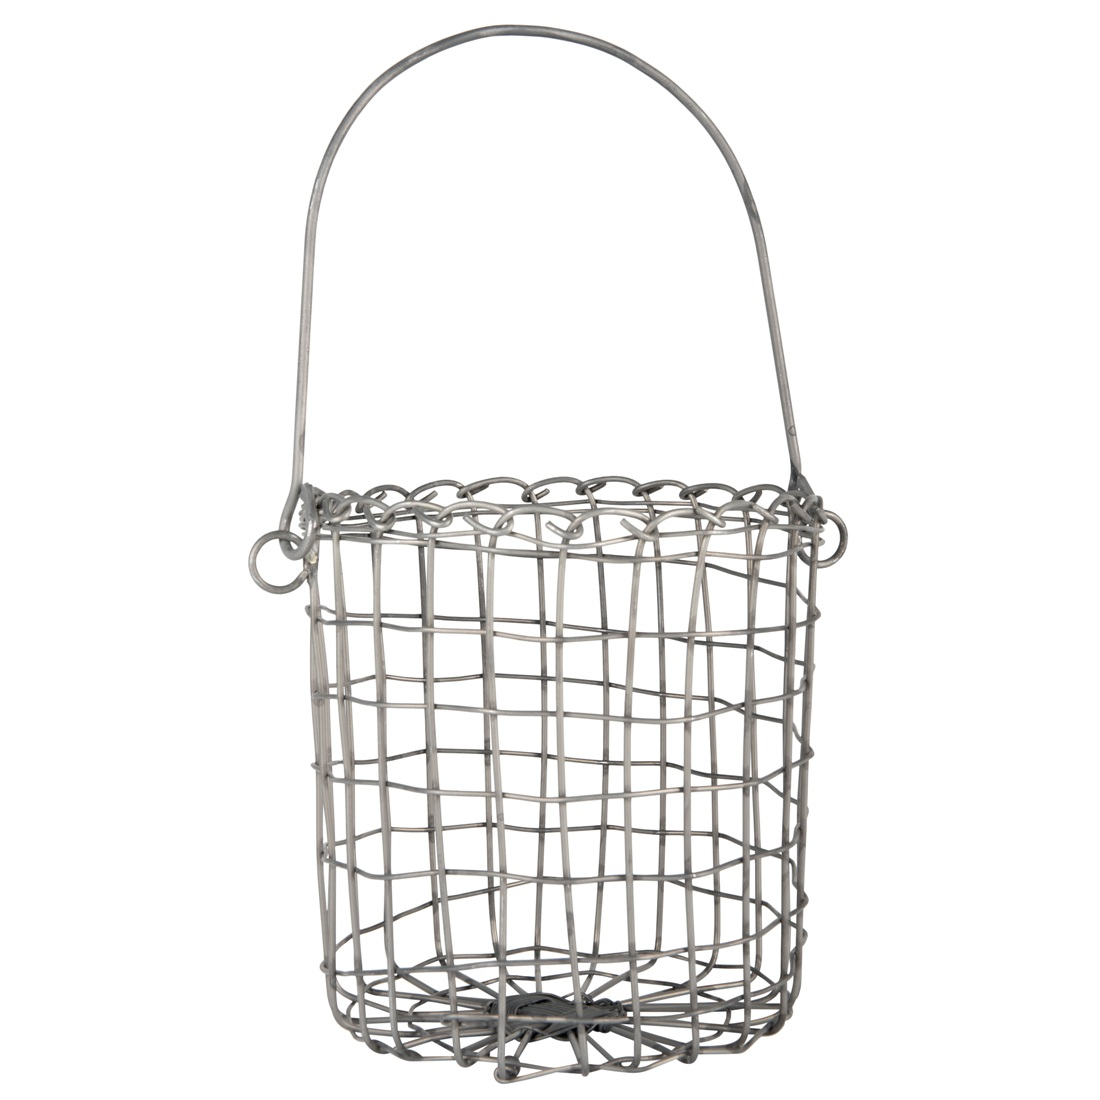 Small Round Metal Wire Hanging Basket Planter by Ib Laursen